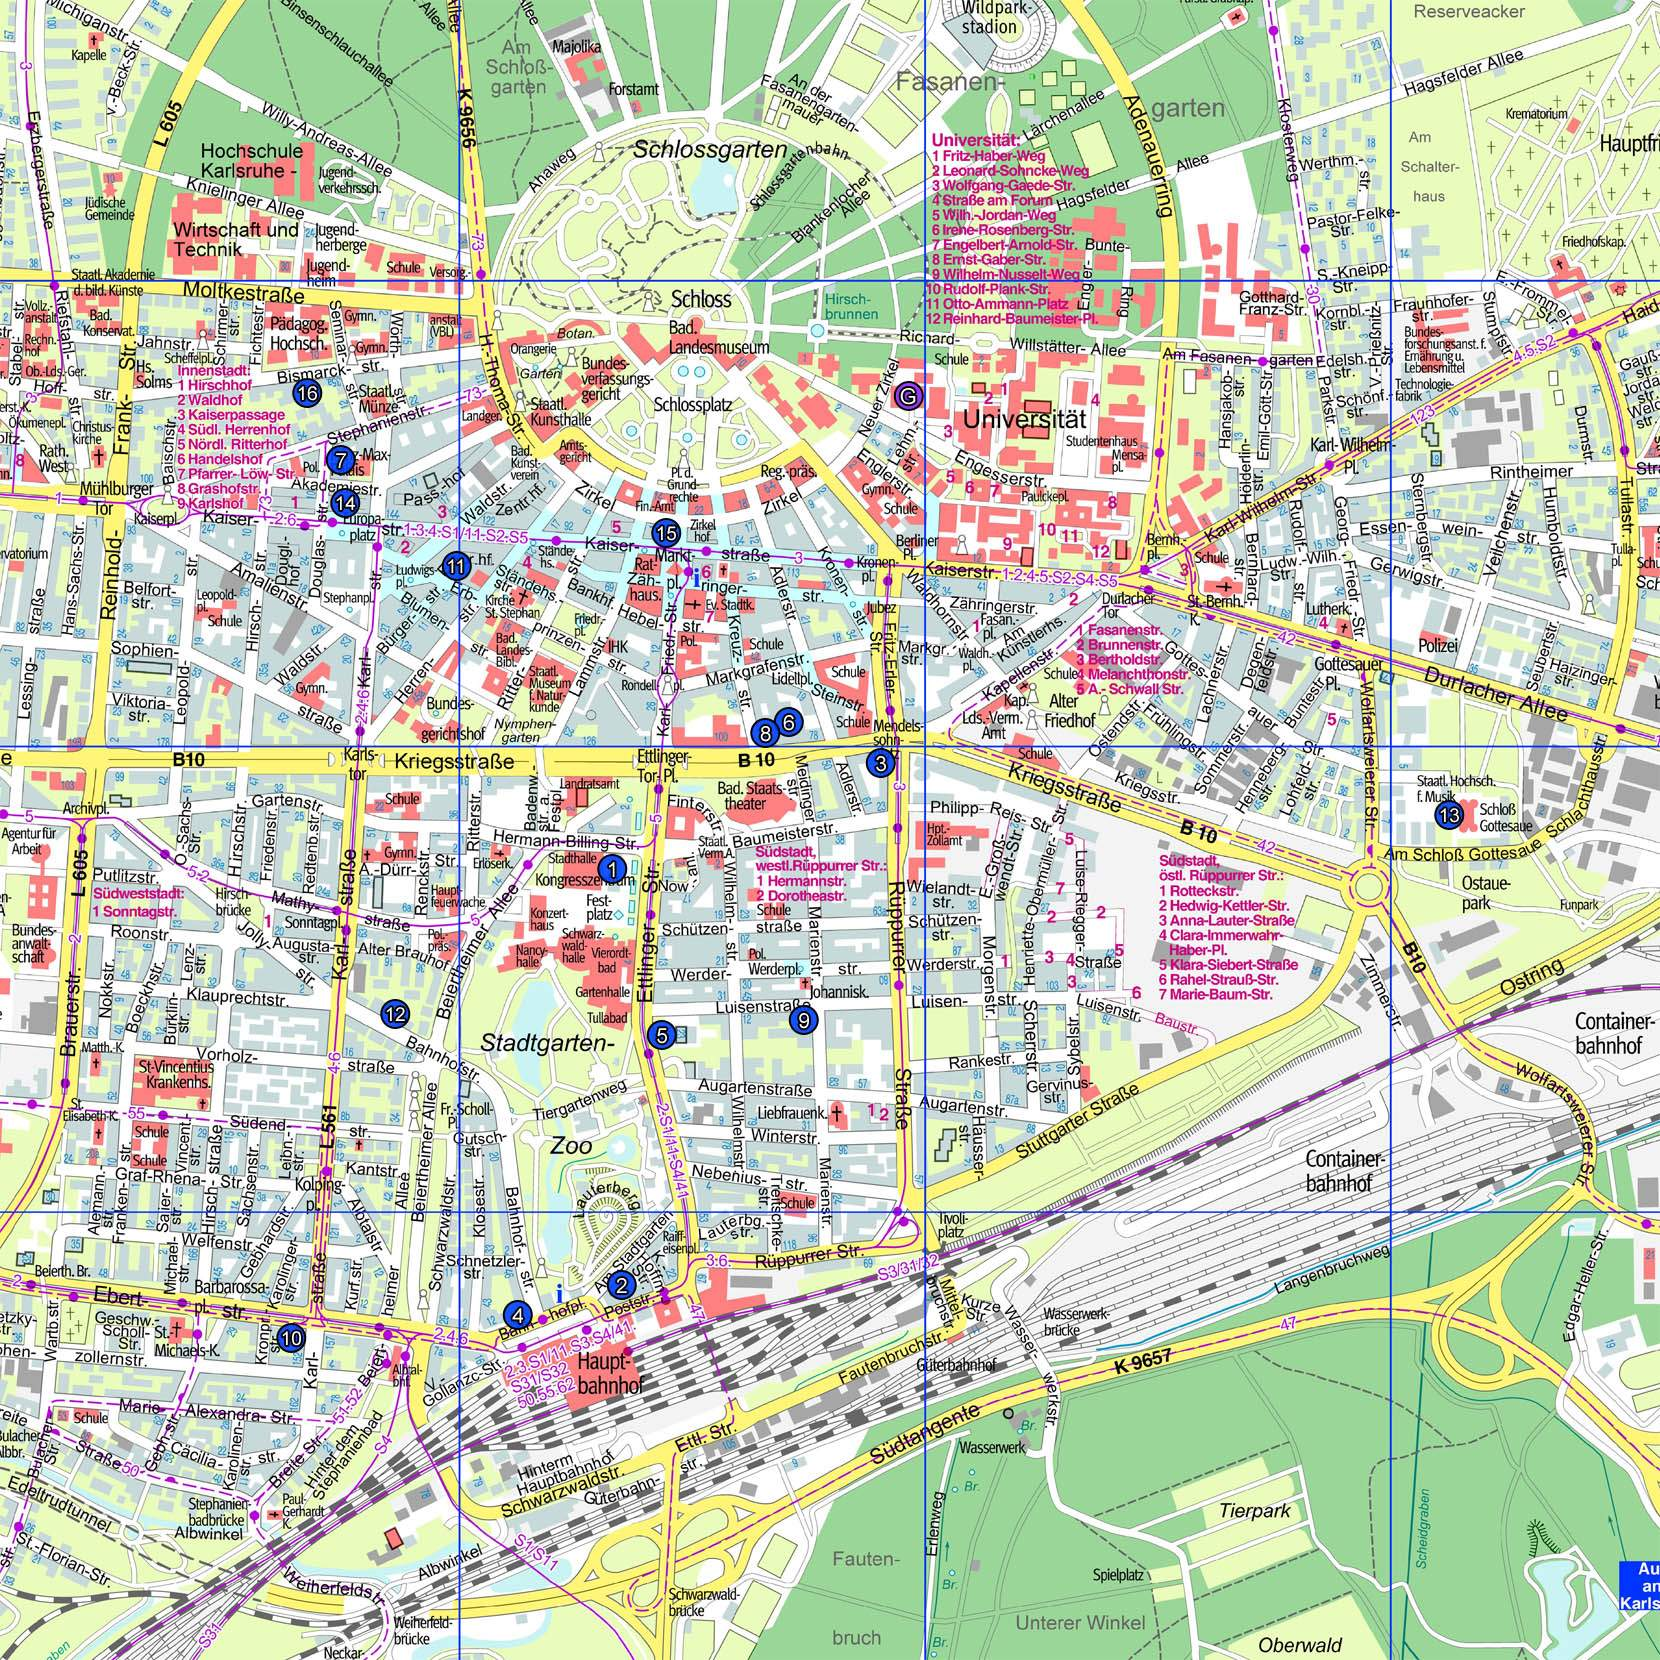 Karlsruhe Map Of Germany.Large Karlsruhe Maps For Free Download And Print High Resolution